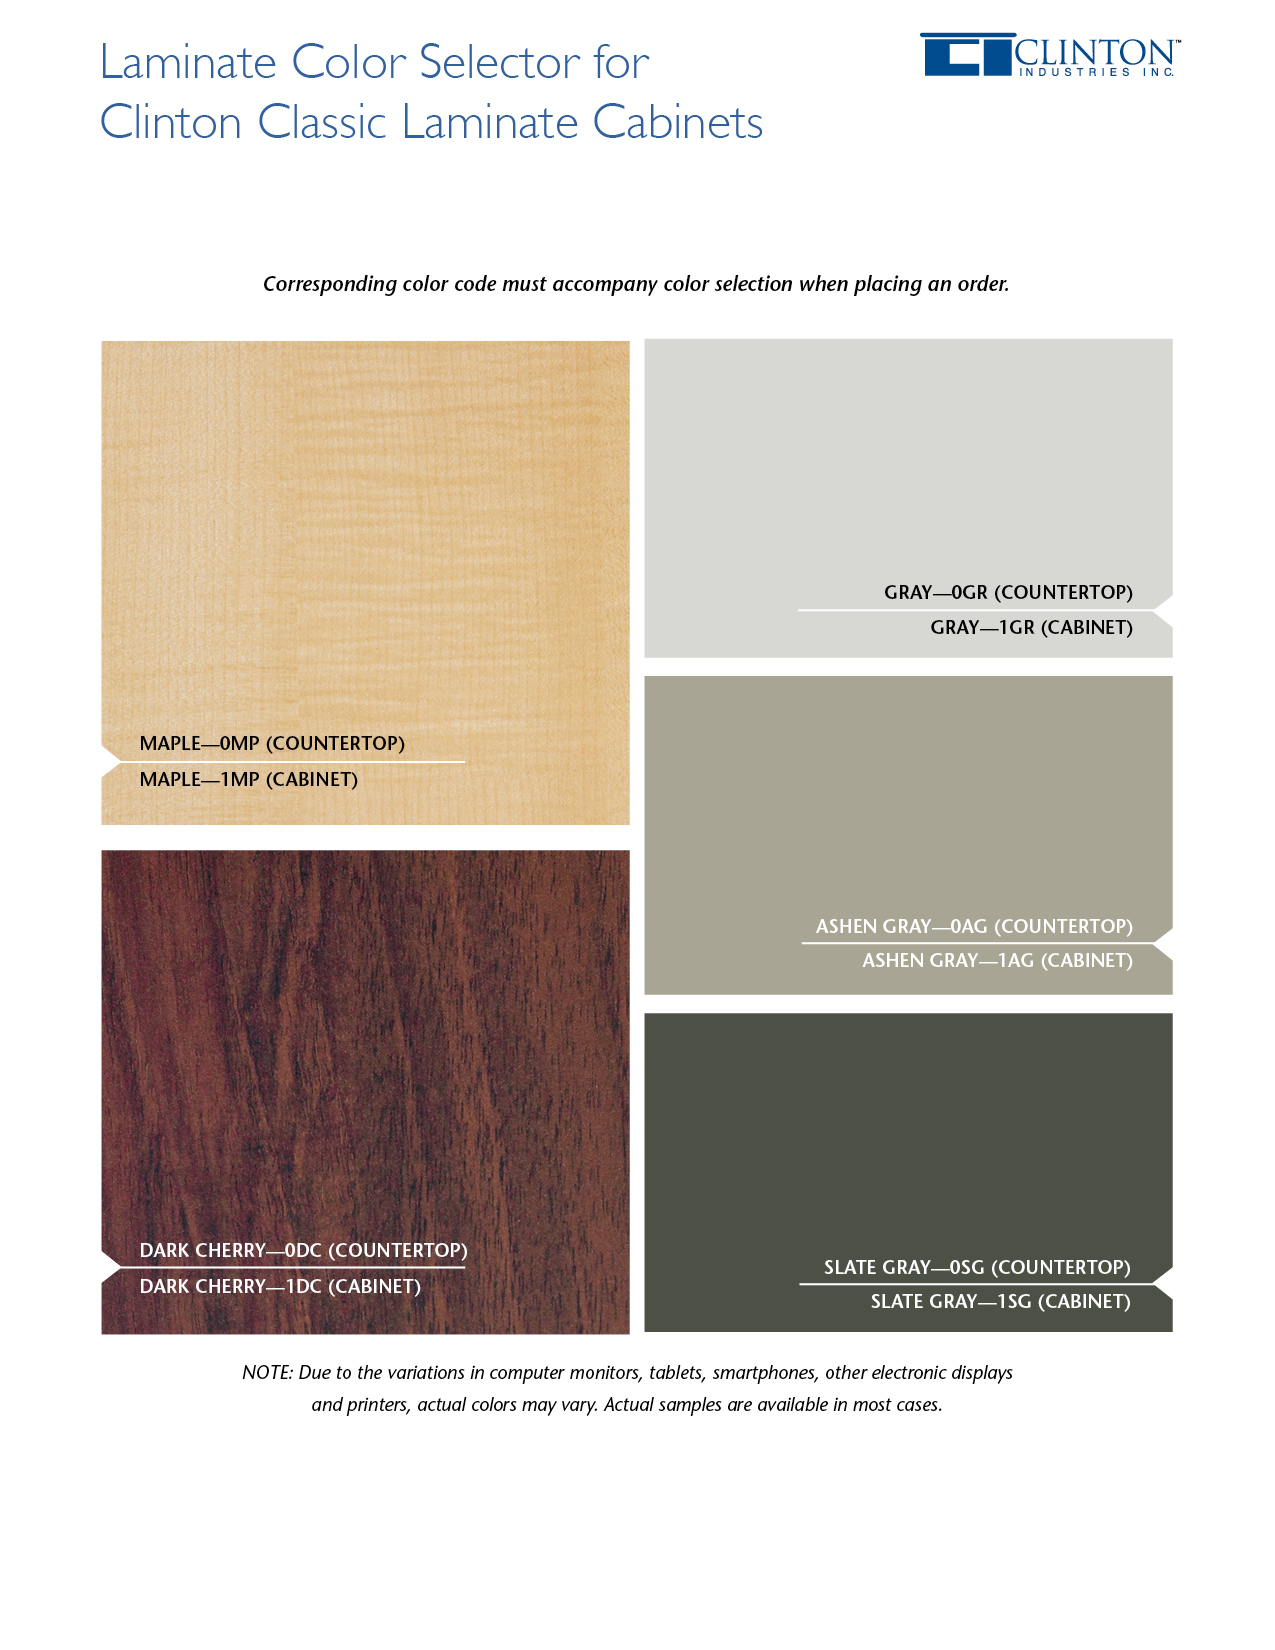 Classic Laminate Cabinets Color Selector